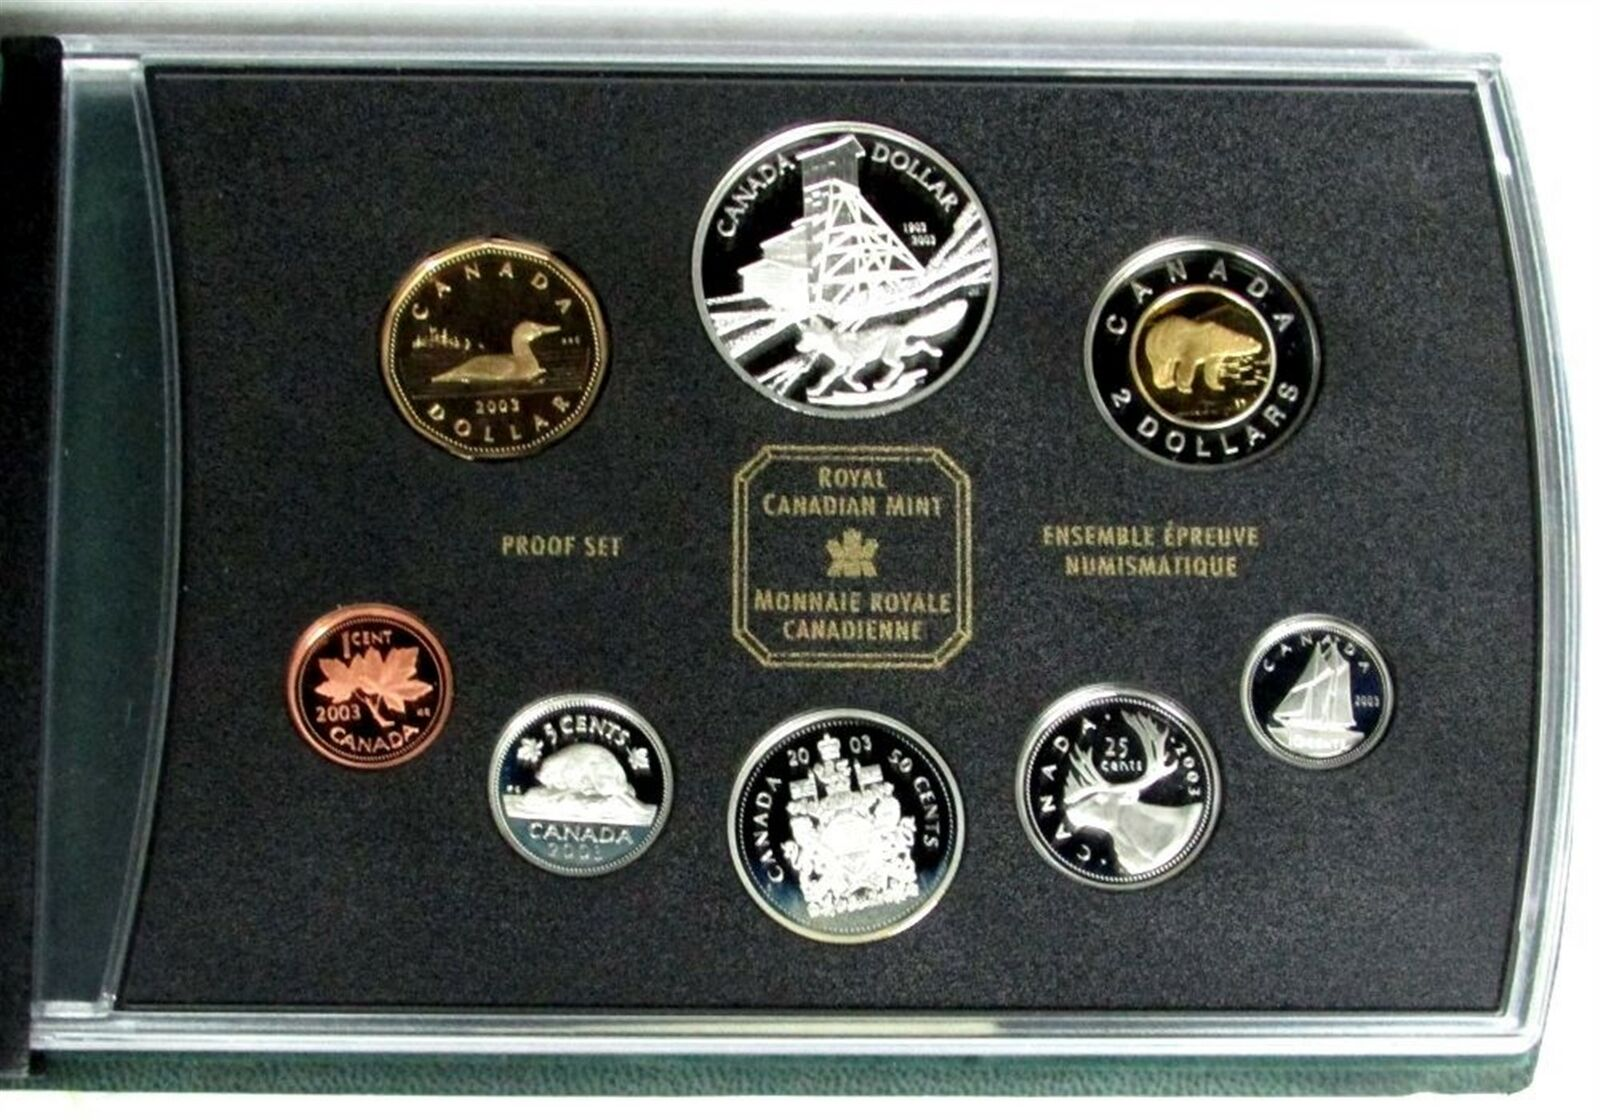 2003 CANADA 100th ANNIVERSARY OF THE COBALT SILVER STRIKE PROOF SILVER DOLLAR